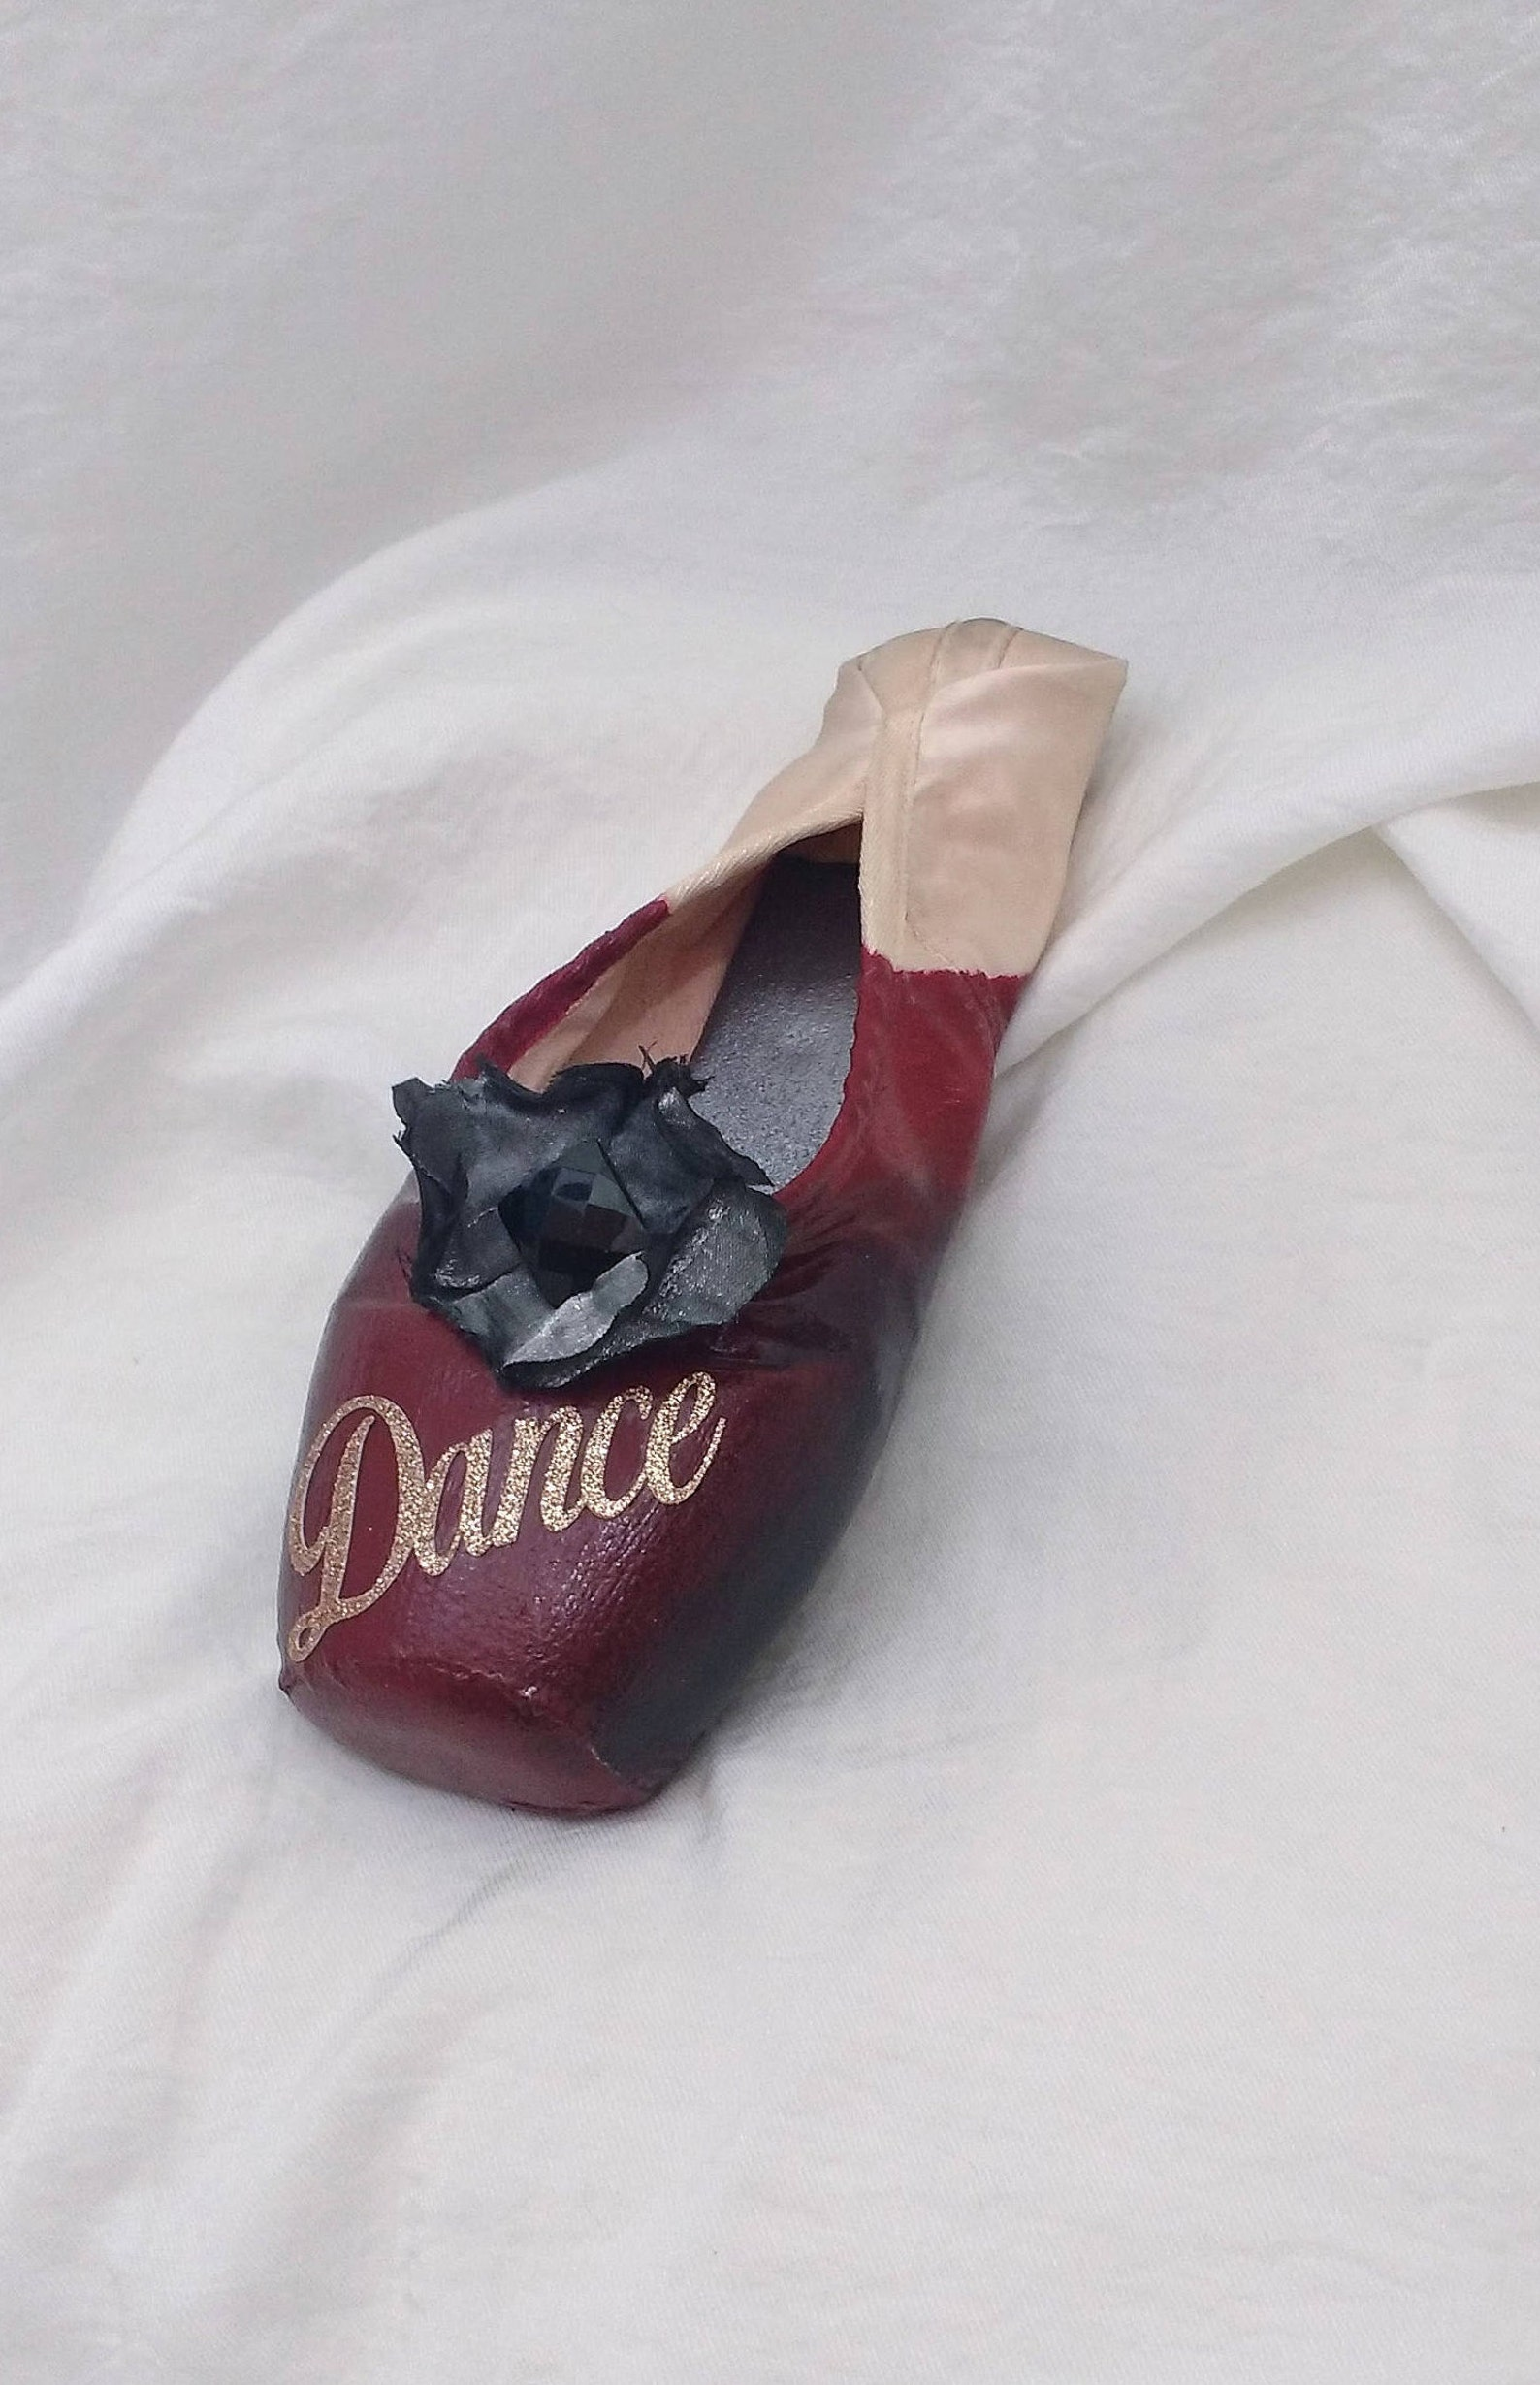 maroon dance decorated pointe shoe, maroon embellished toe shoe, maroon decorated ballet shoe, decorated classical ballet pointe